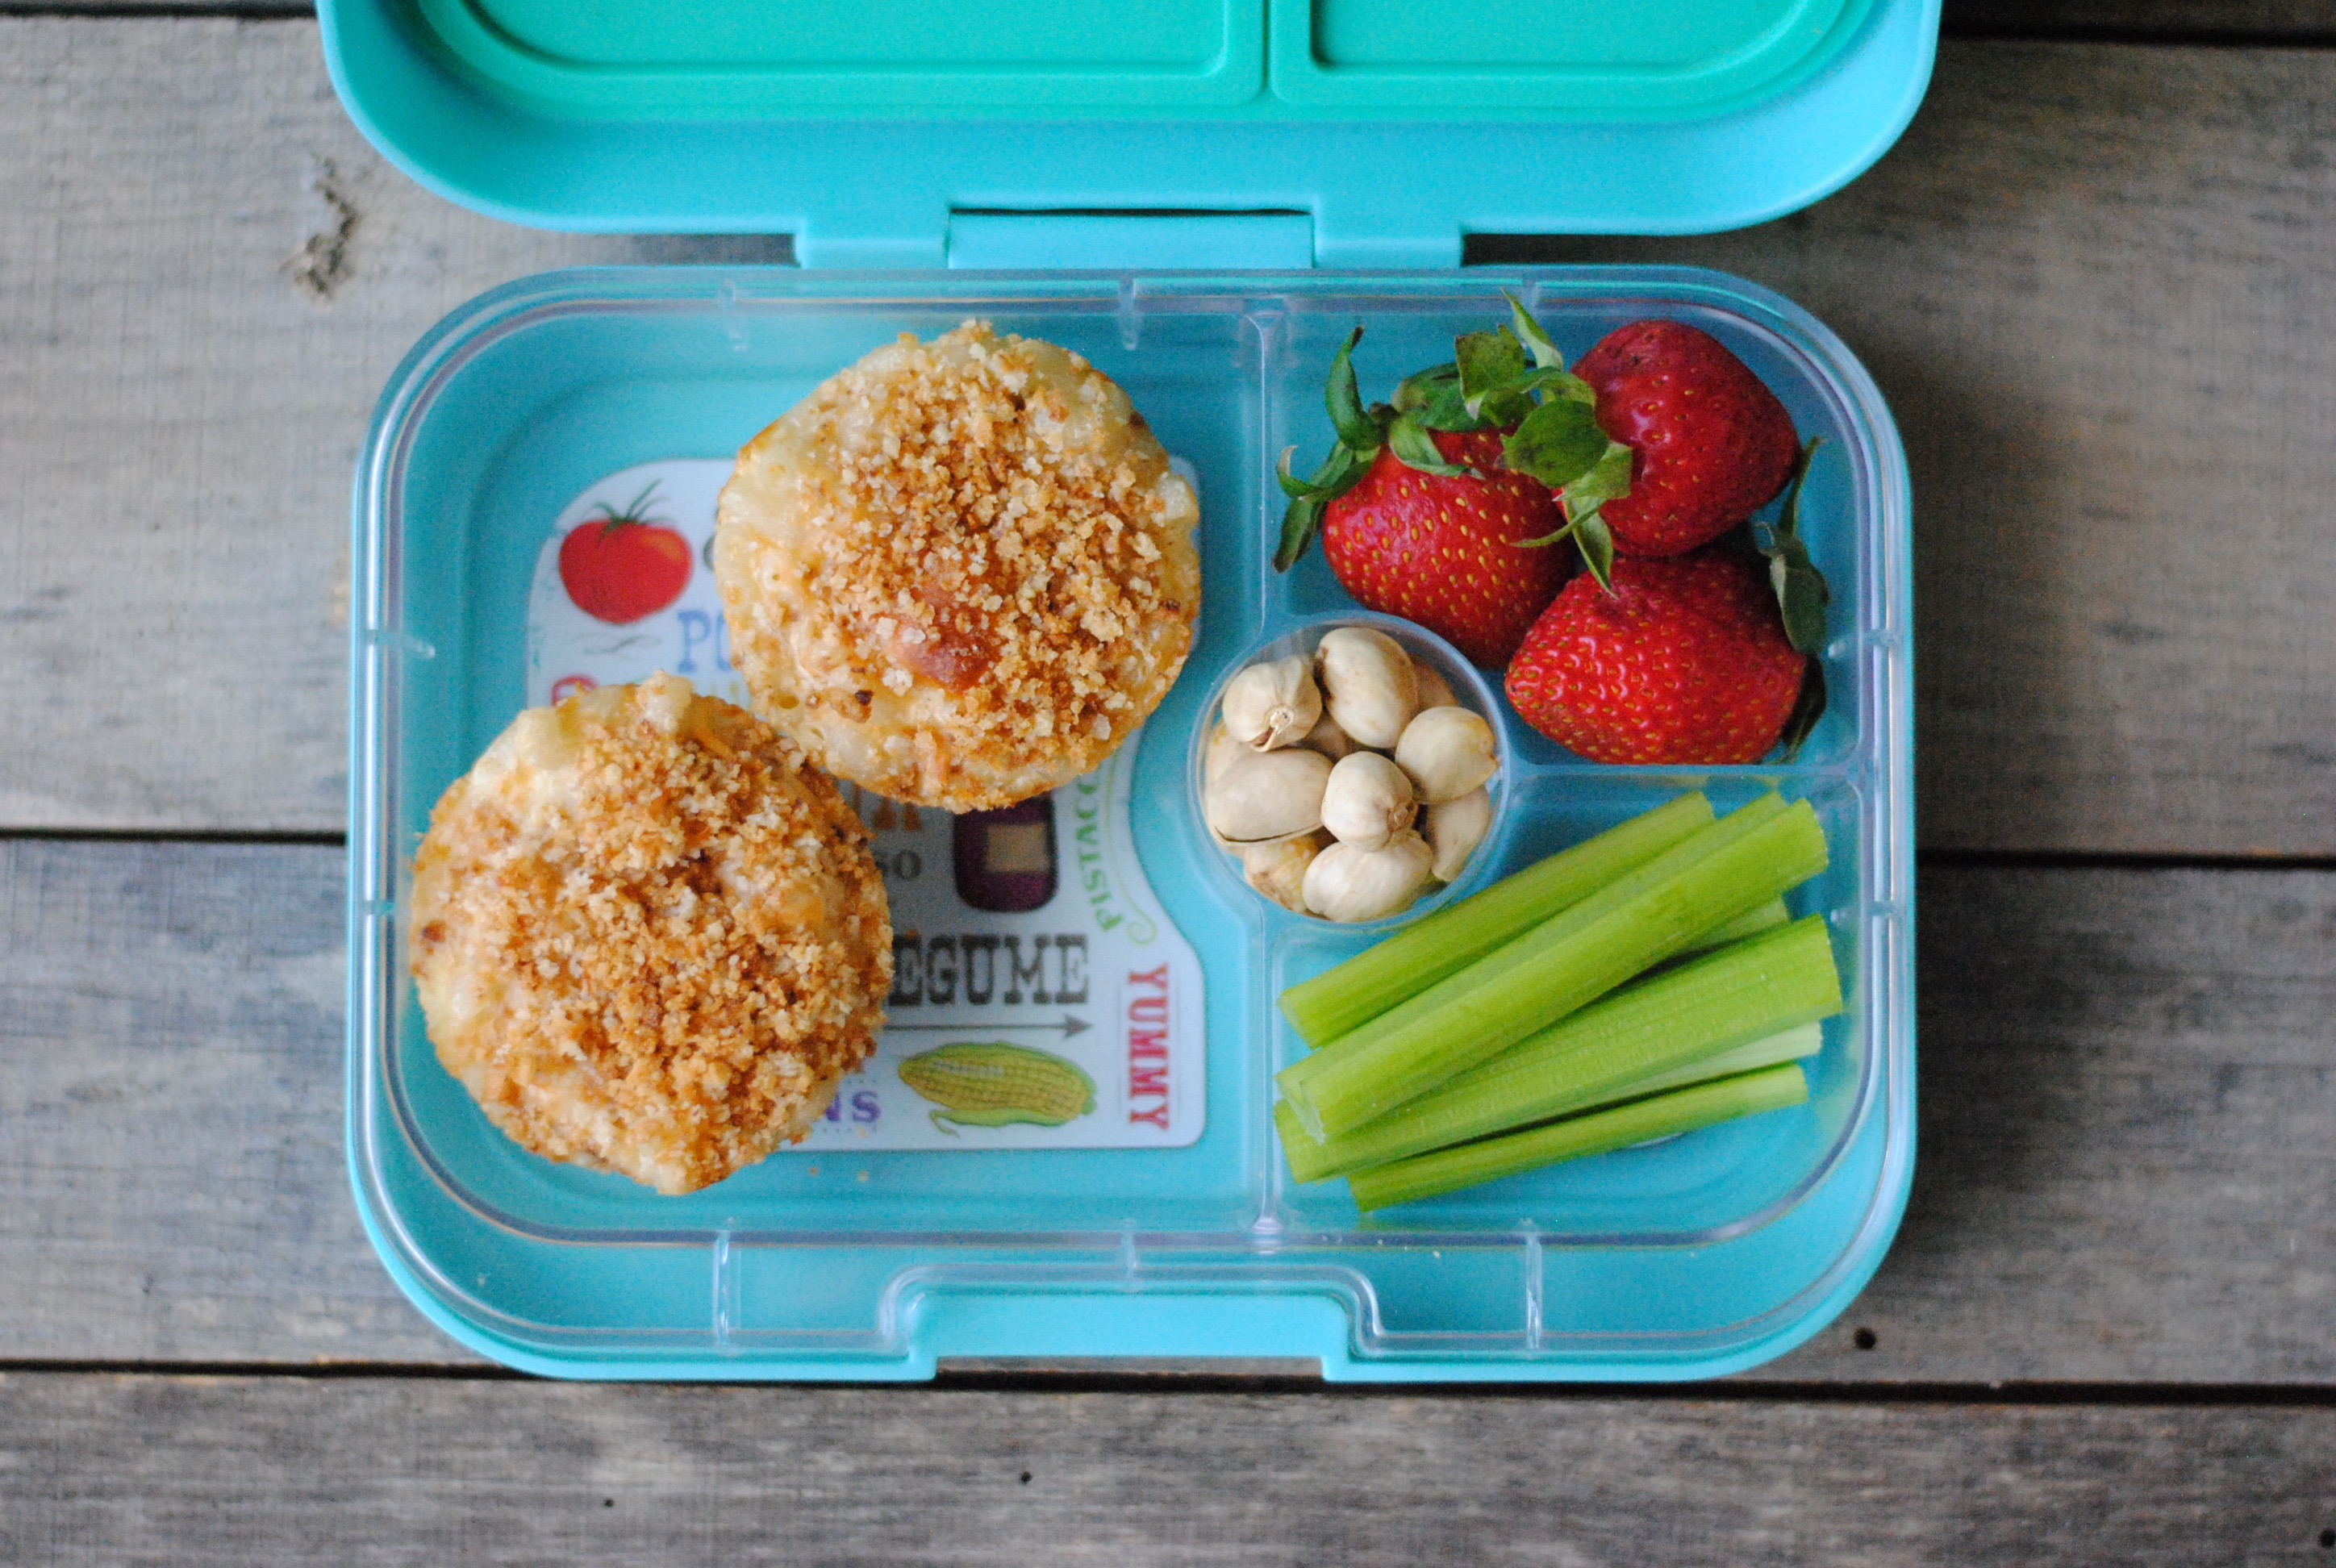 How to Plan Healthy School Lunches